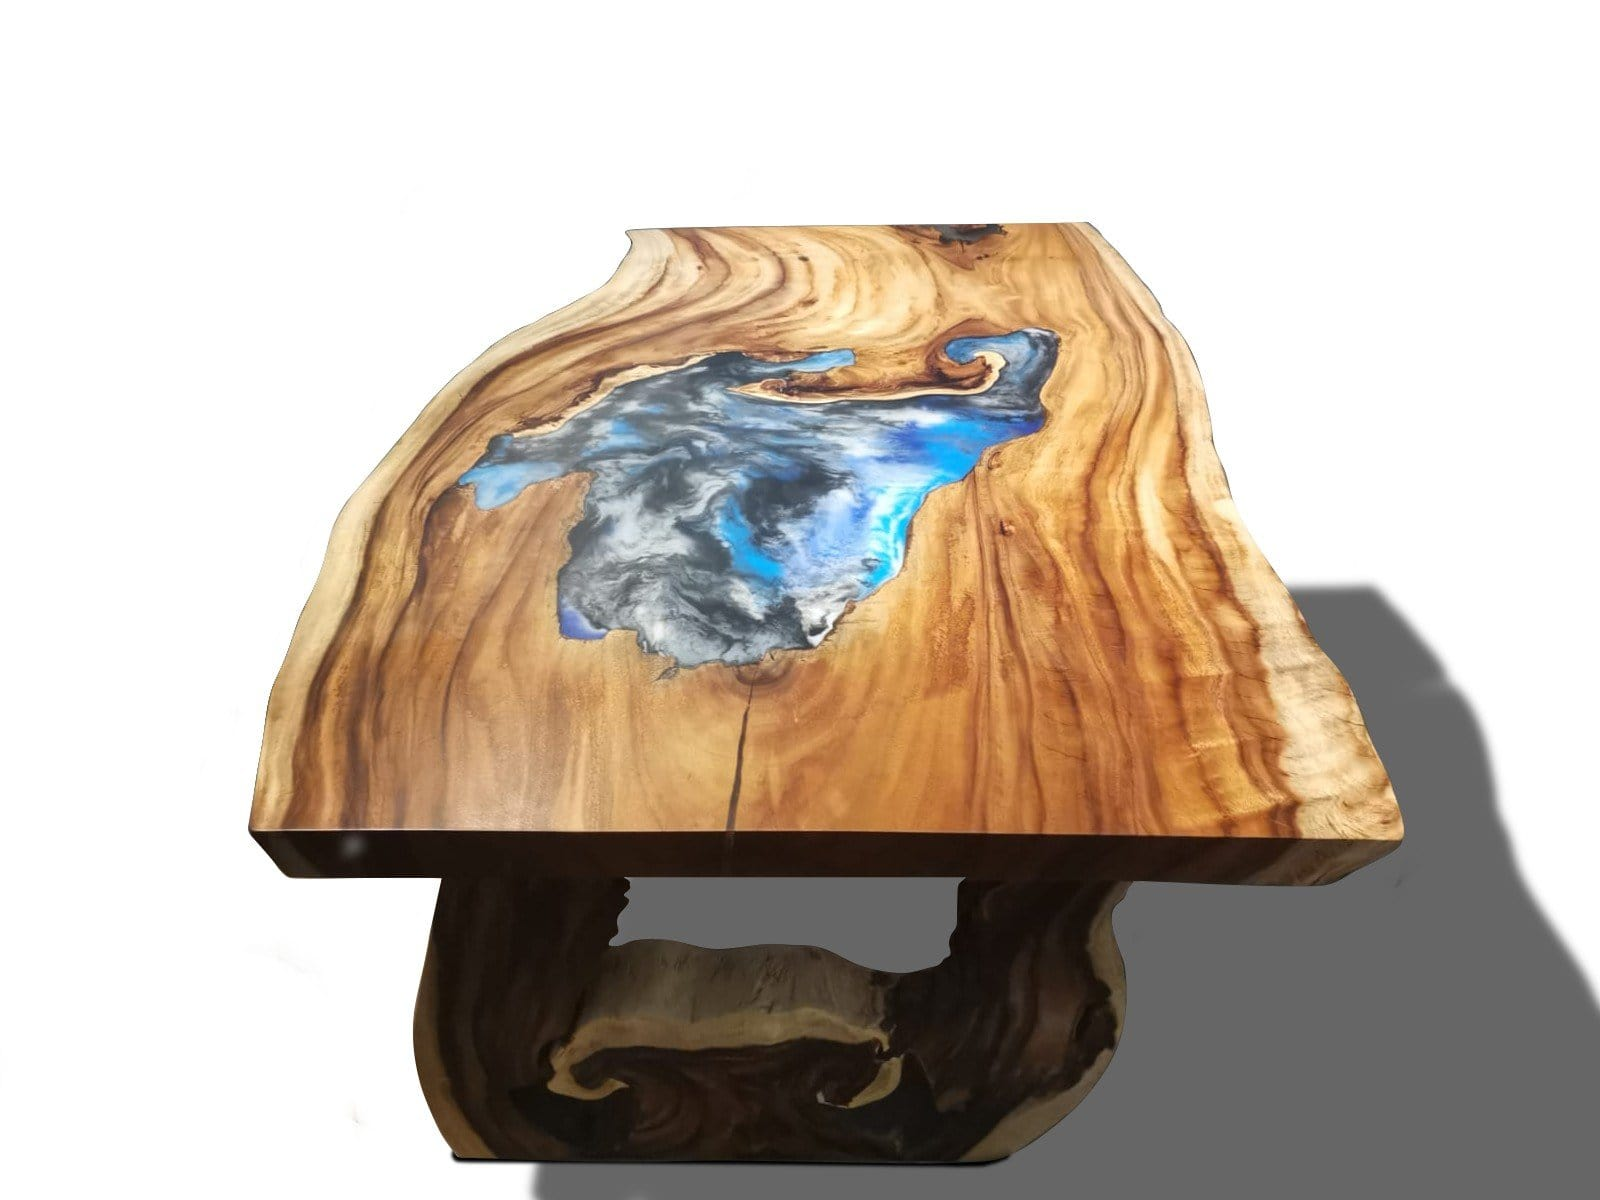 End View Of Acacia Wood Live Edge Dining Table with Epoxy Resin River